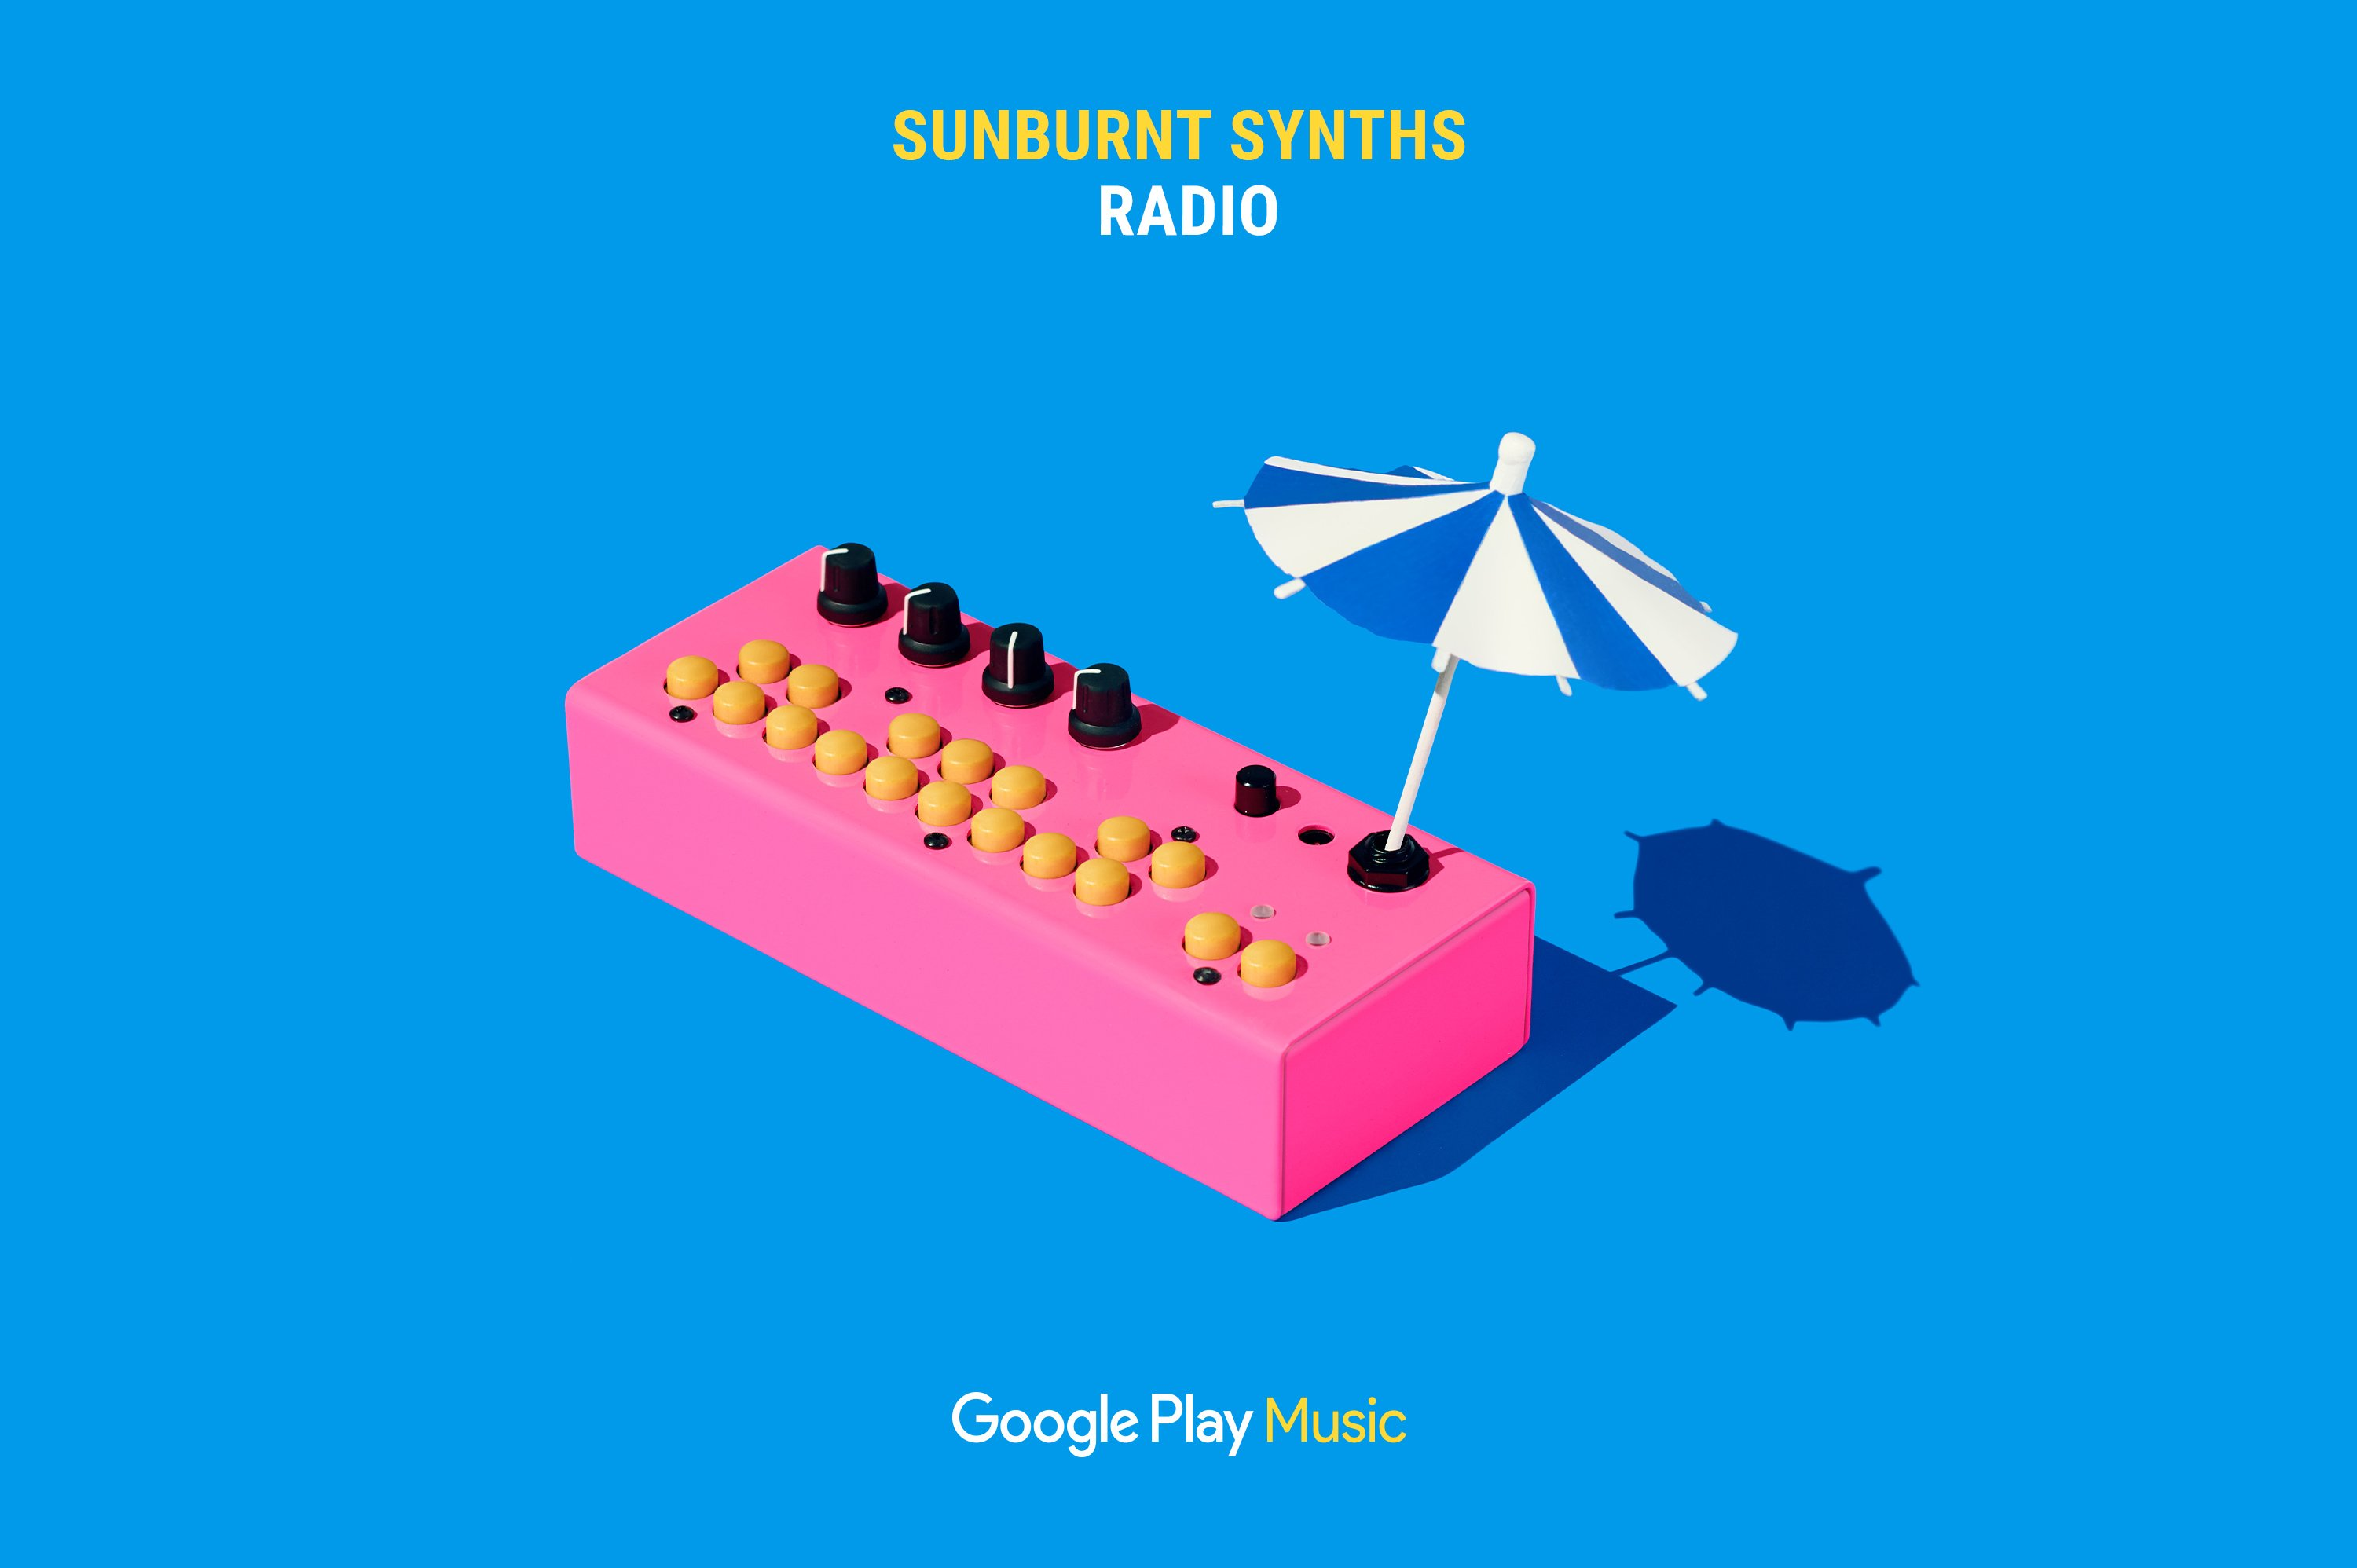 Google Play Music – Sunburnt Synths Radio ad featuring pink mini synth with pool umbrella. Campaign concept and Art Direction by RoAndCo